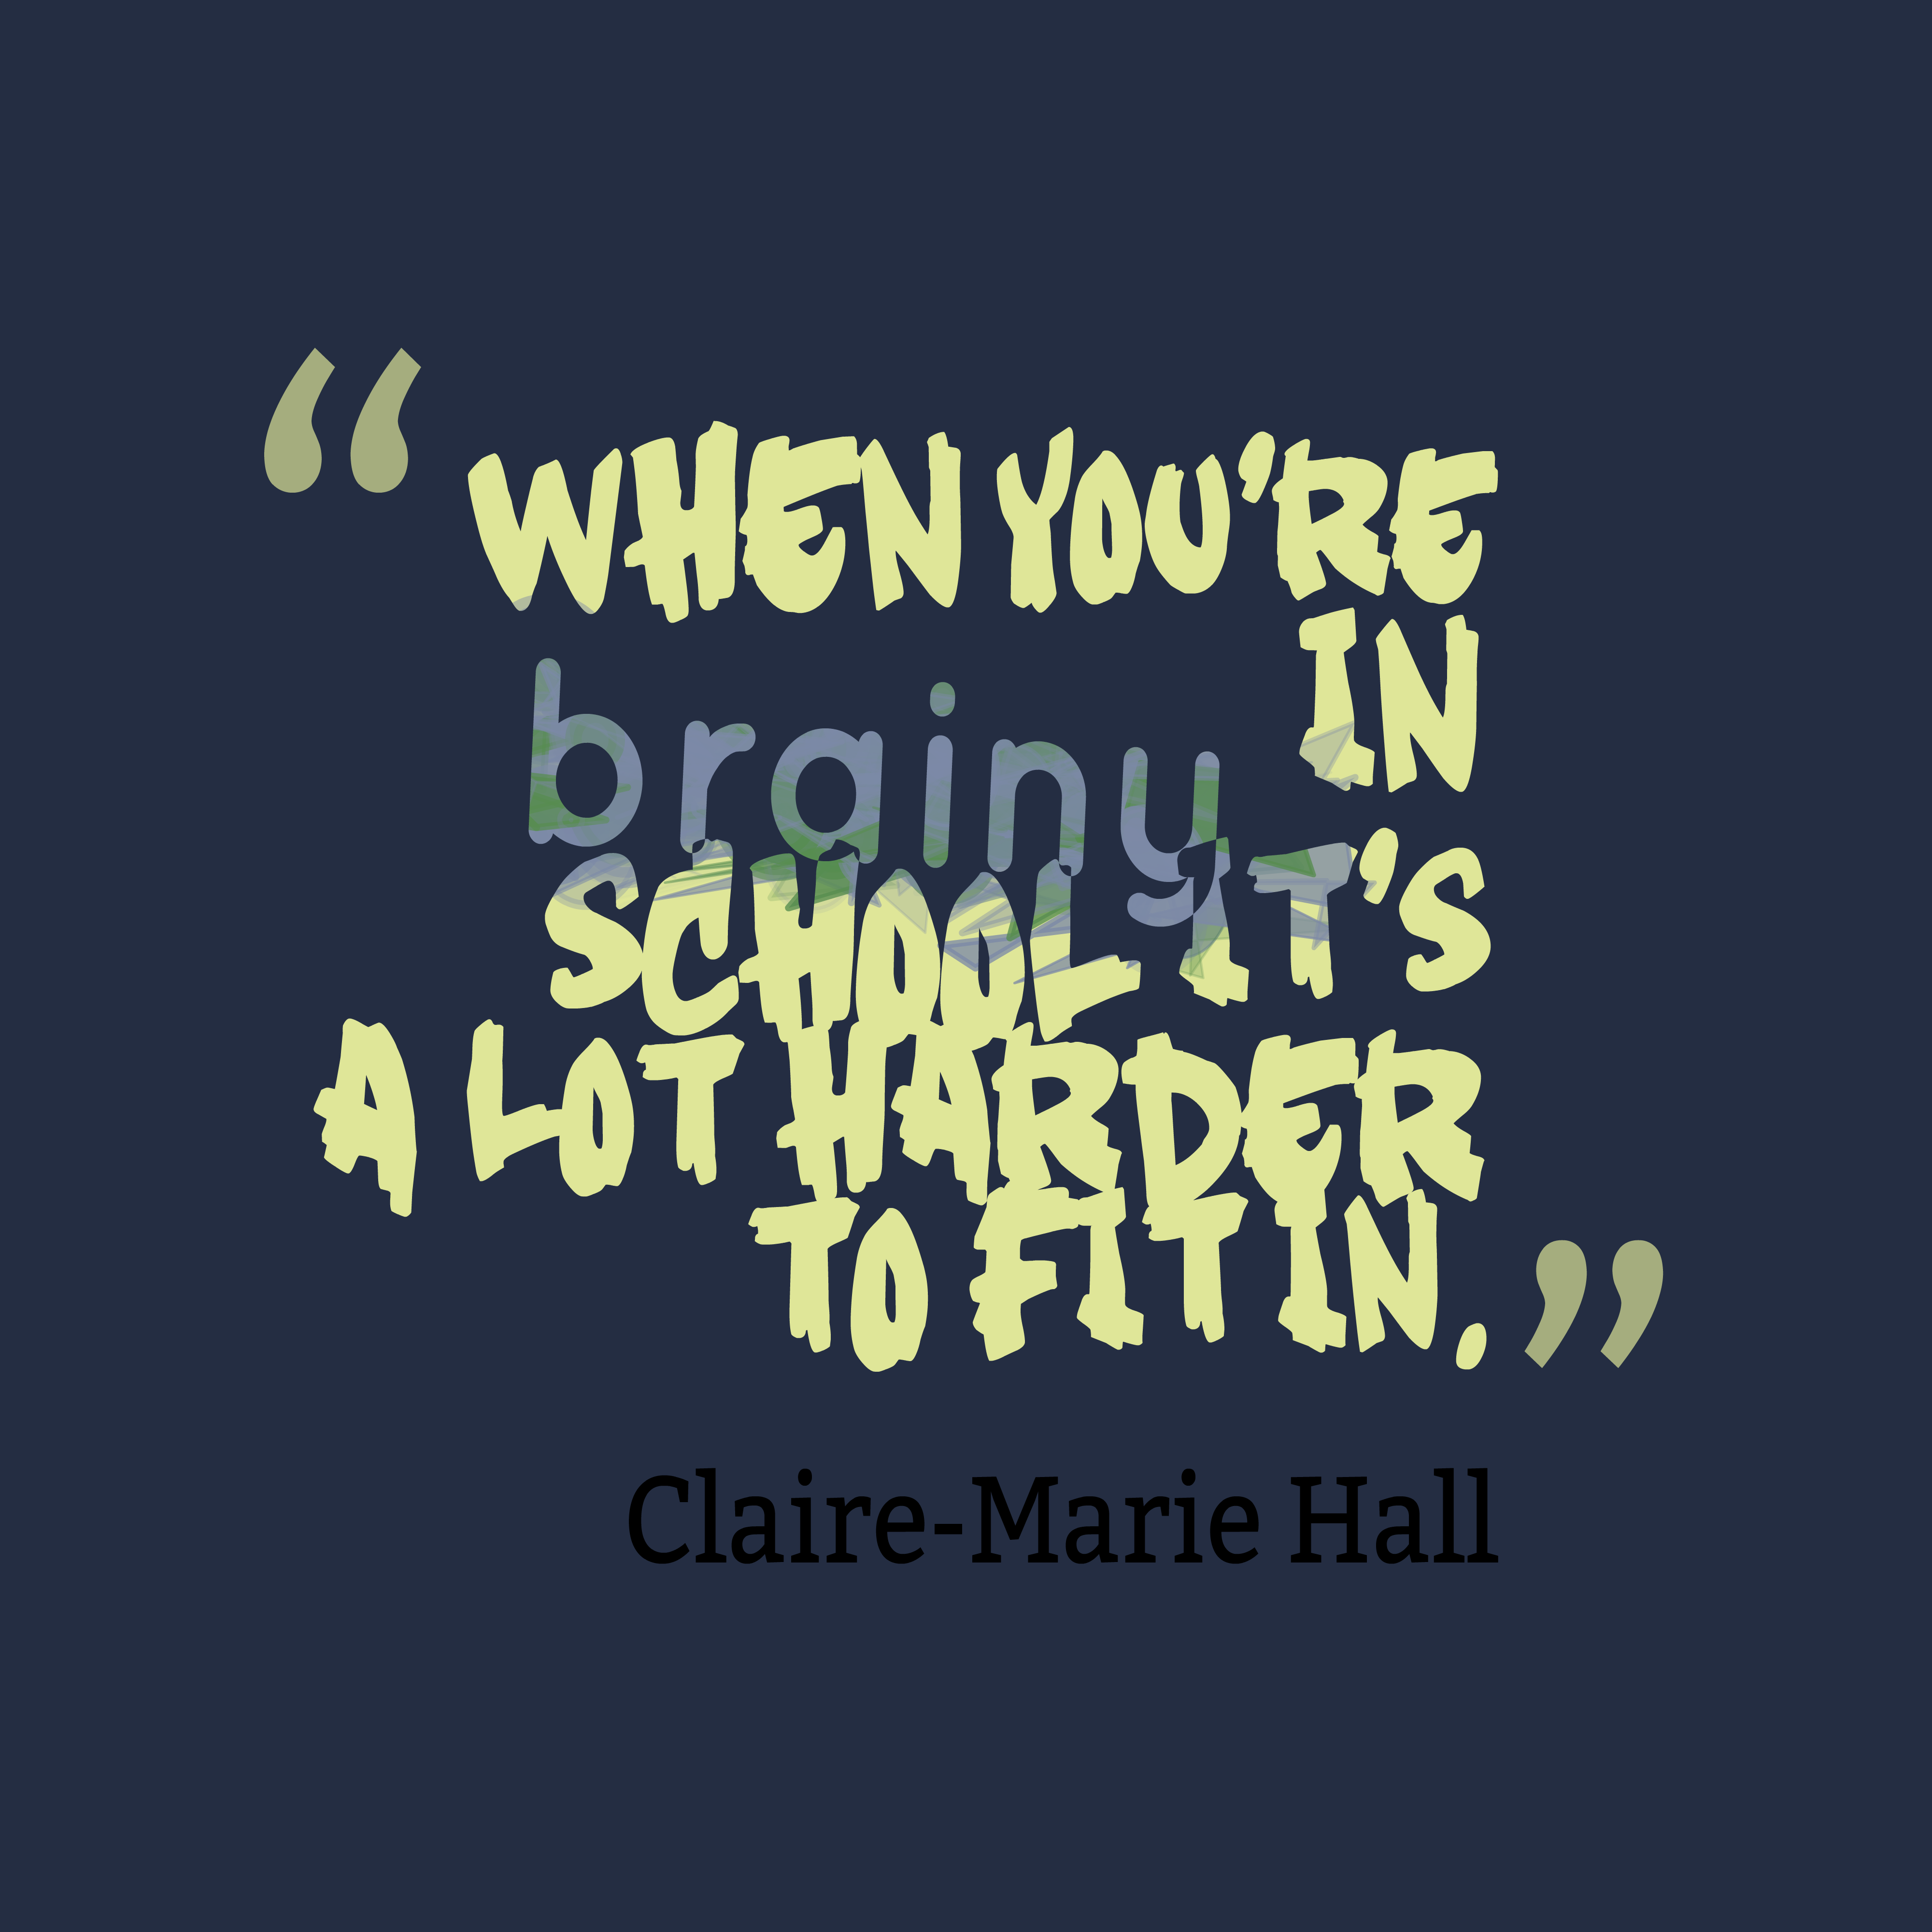 Claire marie hall quote about brainy